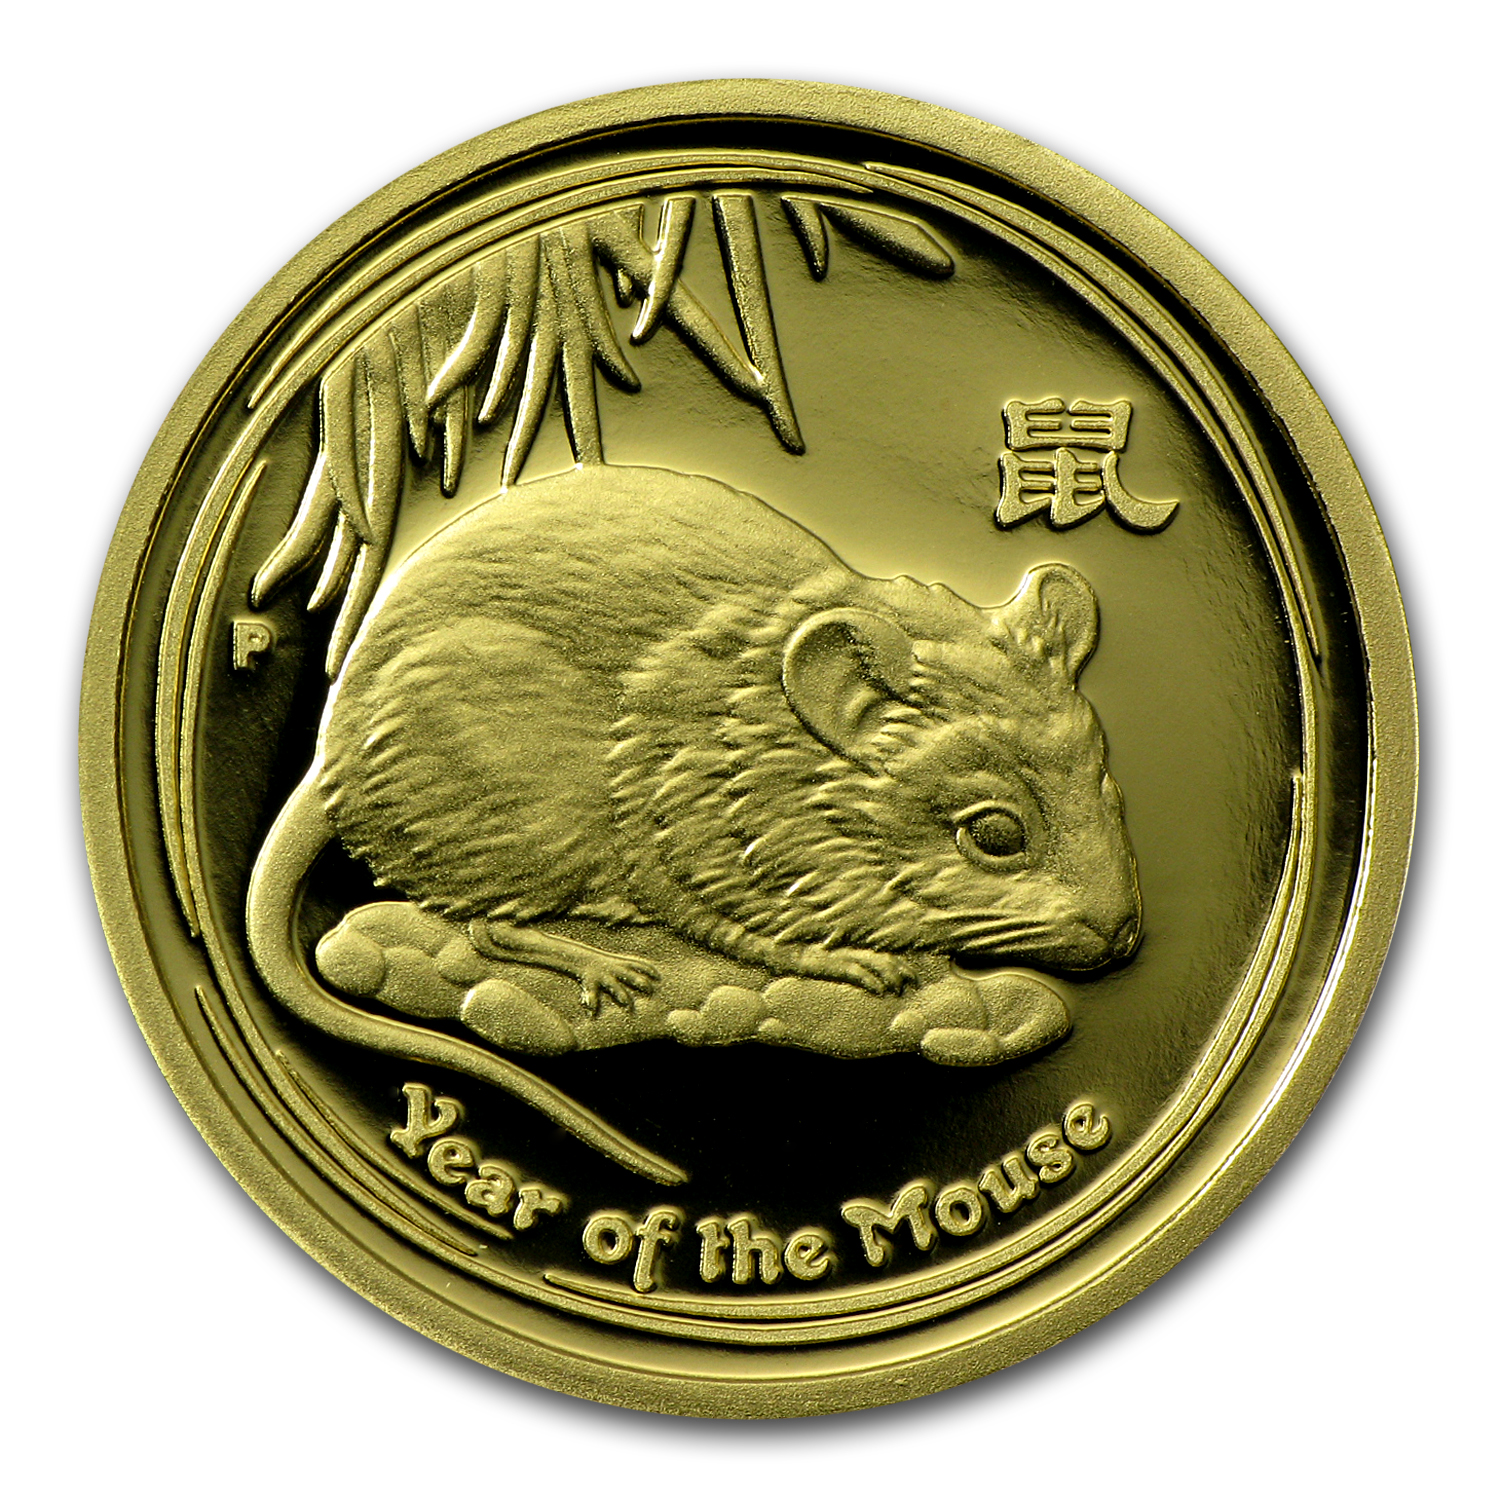 2008 3-Coin Proof Gold Lunar Year of the Mouse (Series II)